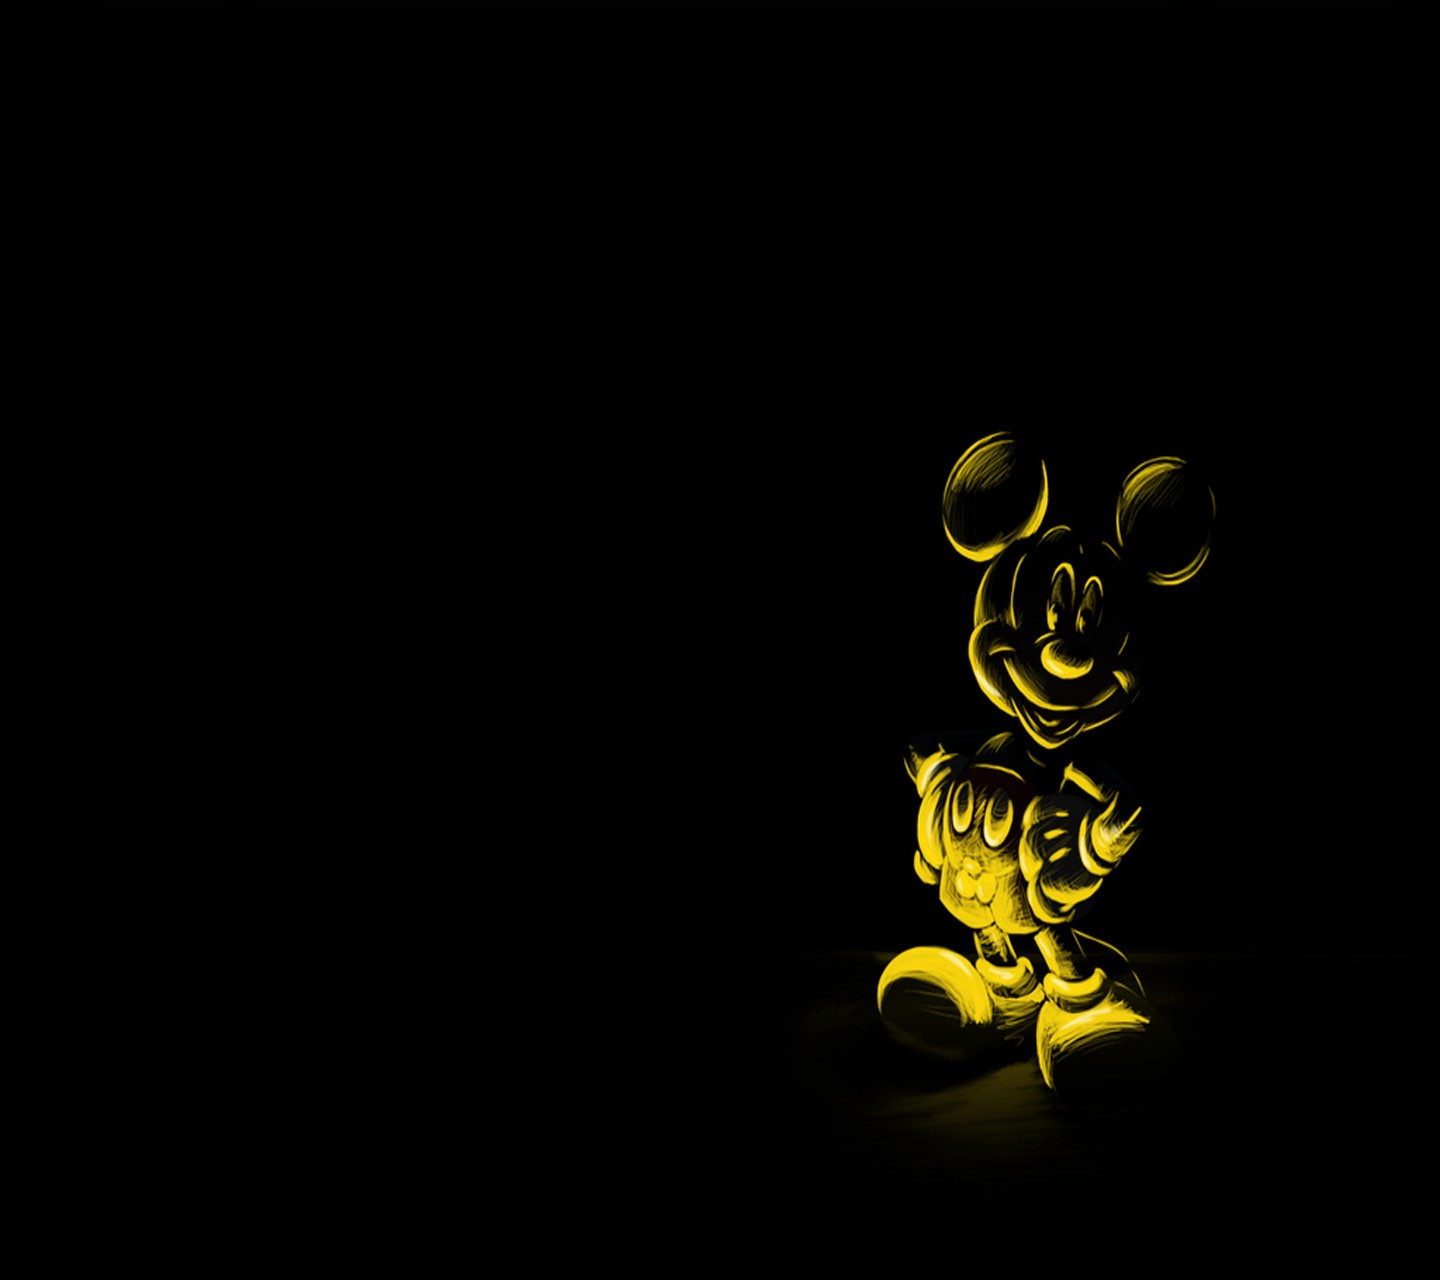 Micky Mouse wallpaper 10183776